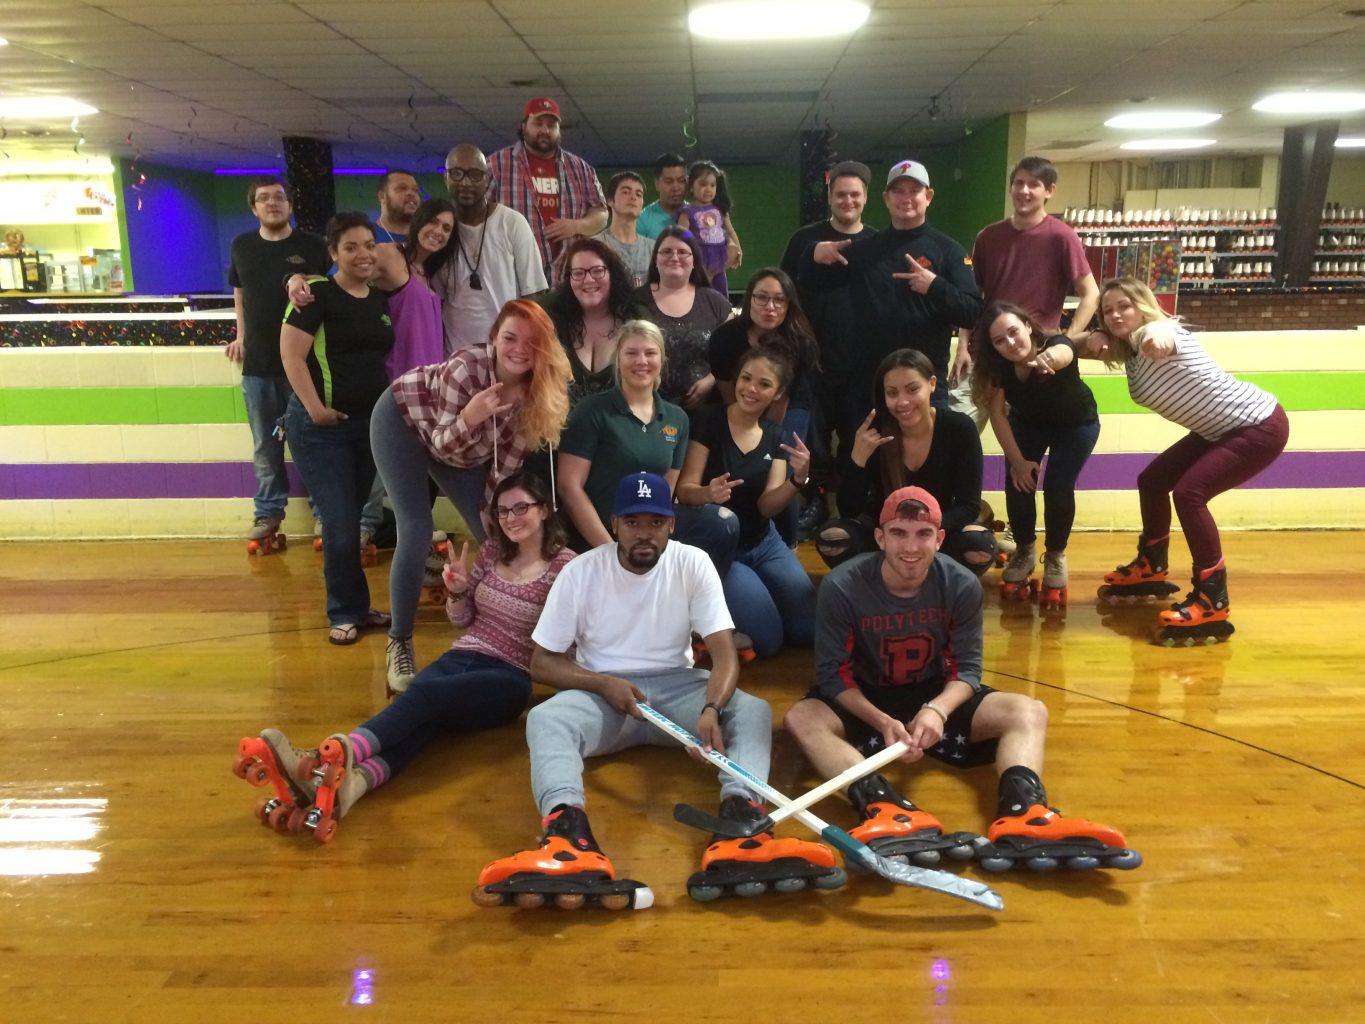 Roller skating rink laurel md - Fun For Everyone Welcome To Dover Skating Center